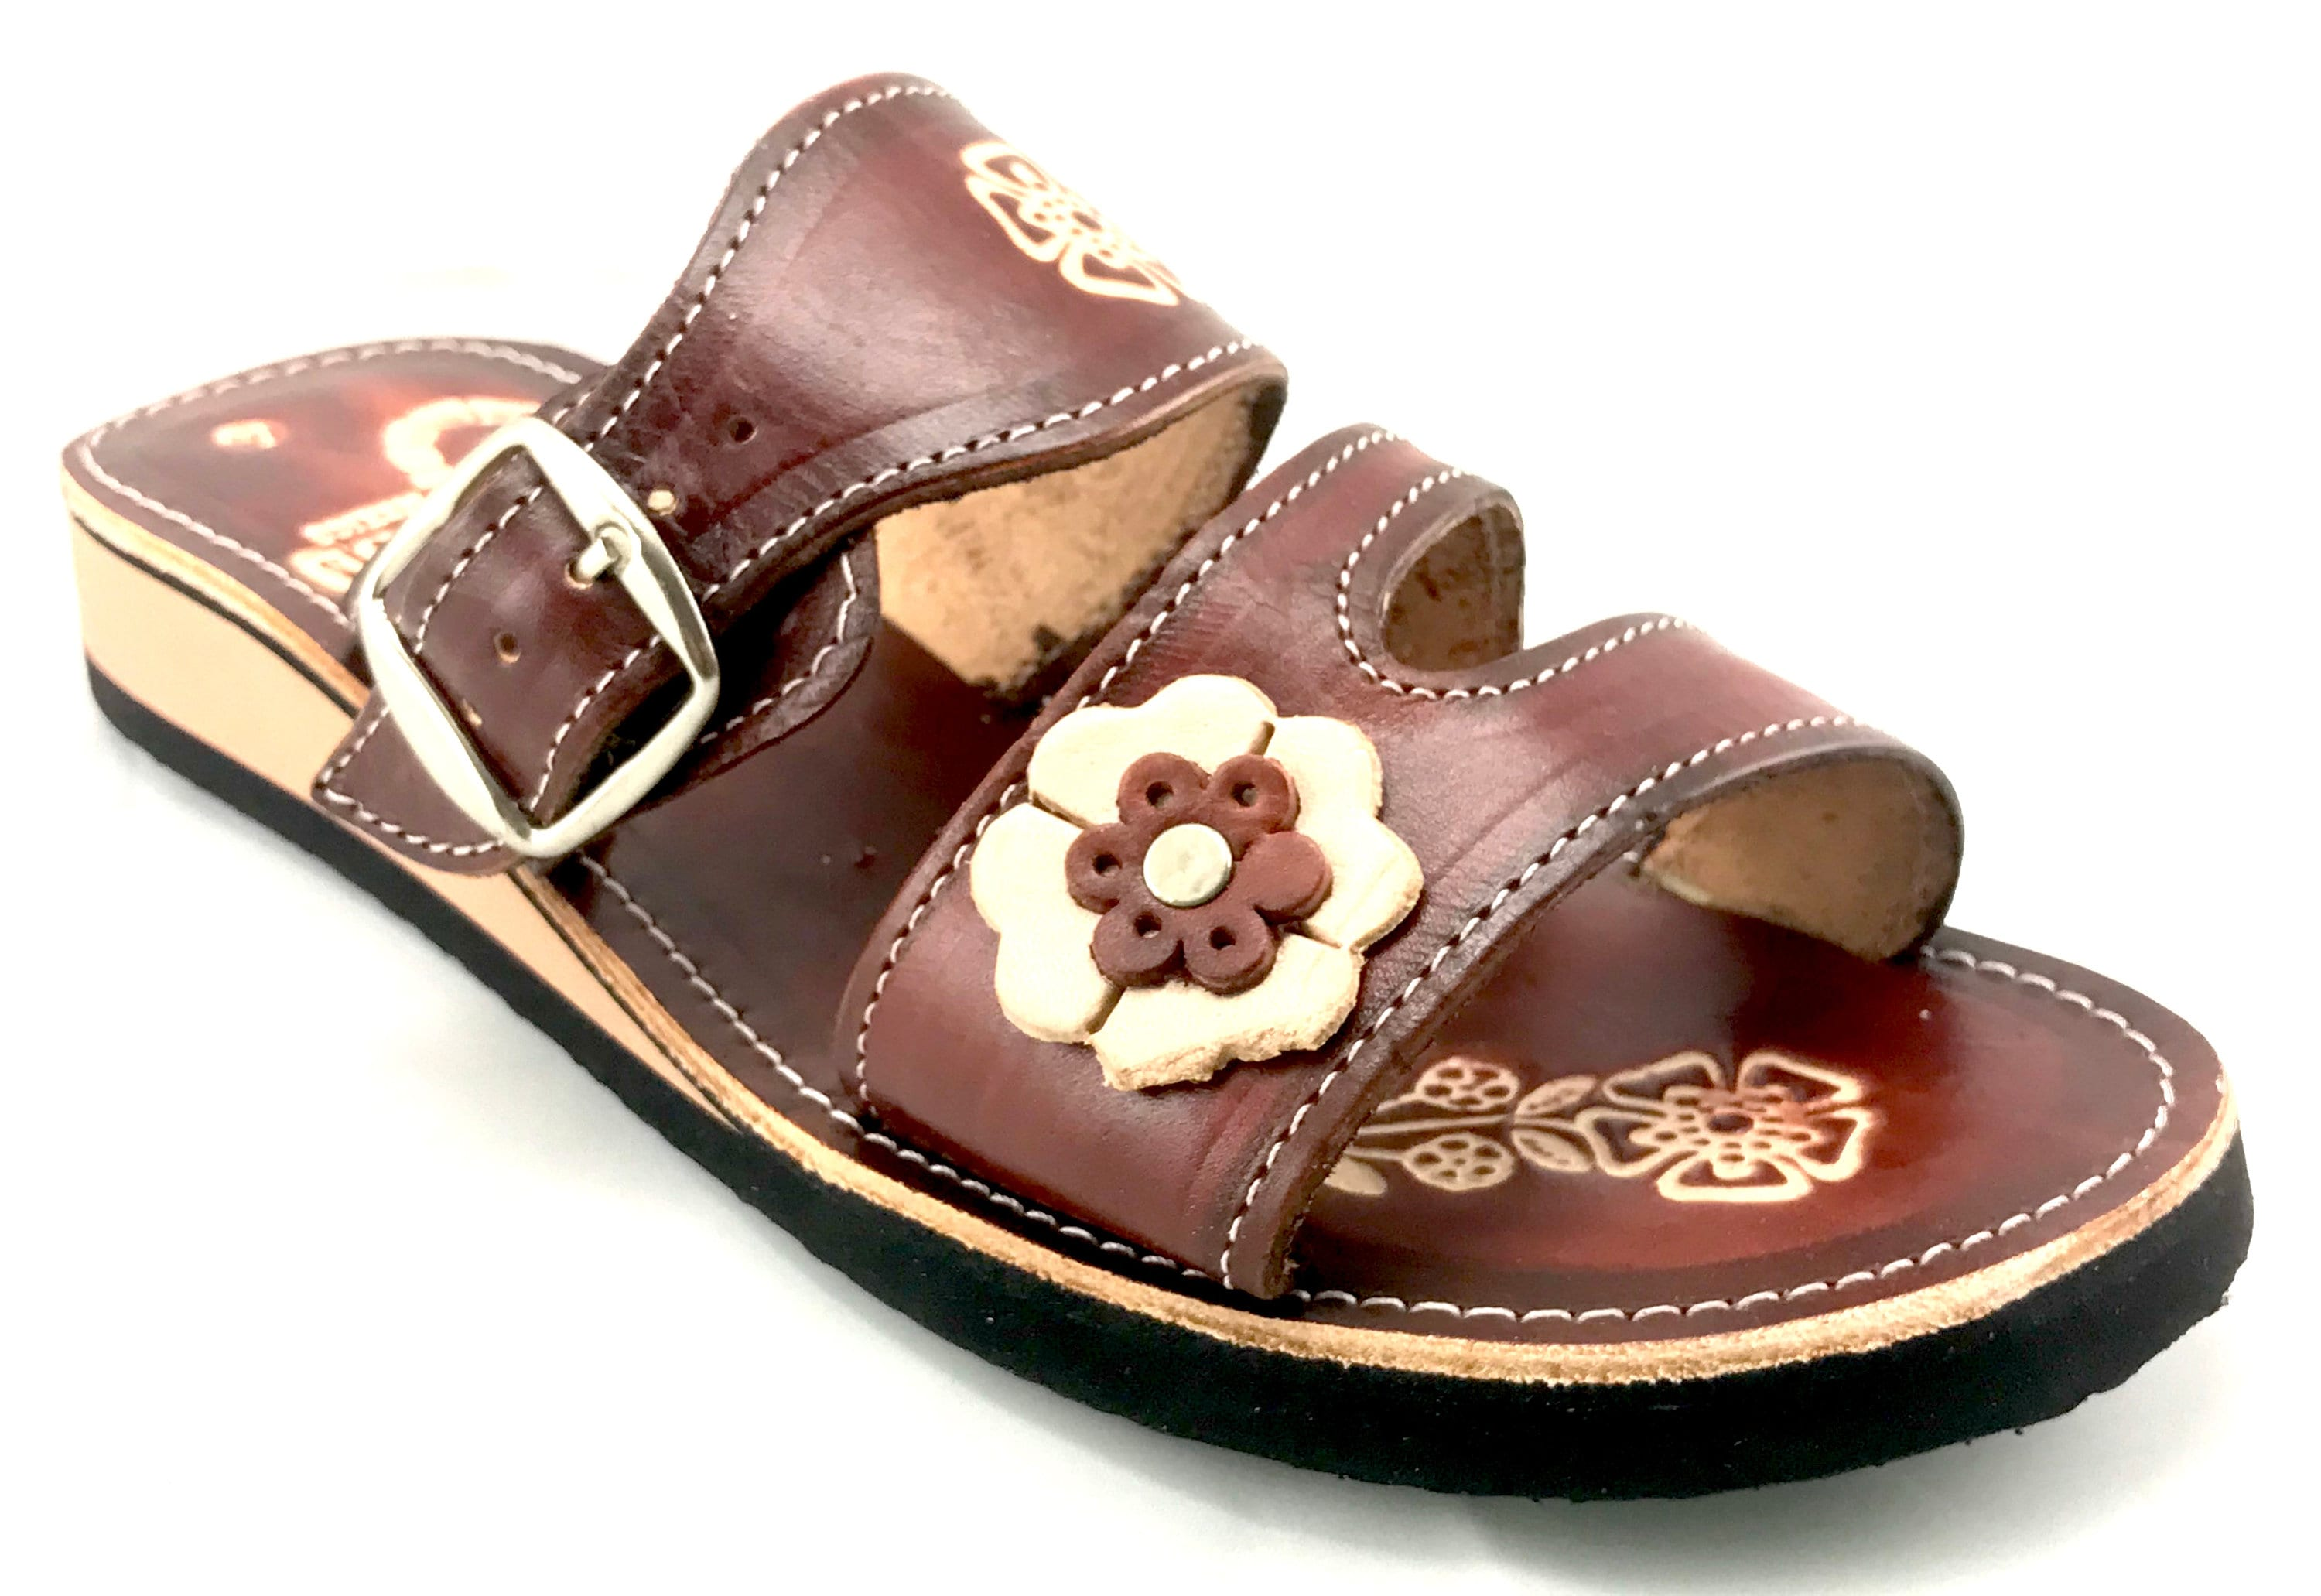 53d9d8be75b61 Womens Mexican Handmade Leather Huaraches Sandals Sandalias Piel Mujer  Mexicano Sahuayo Mexico BROCHE